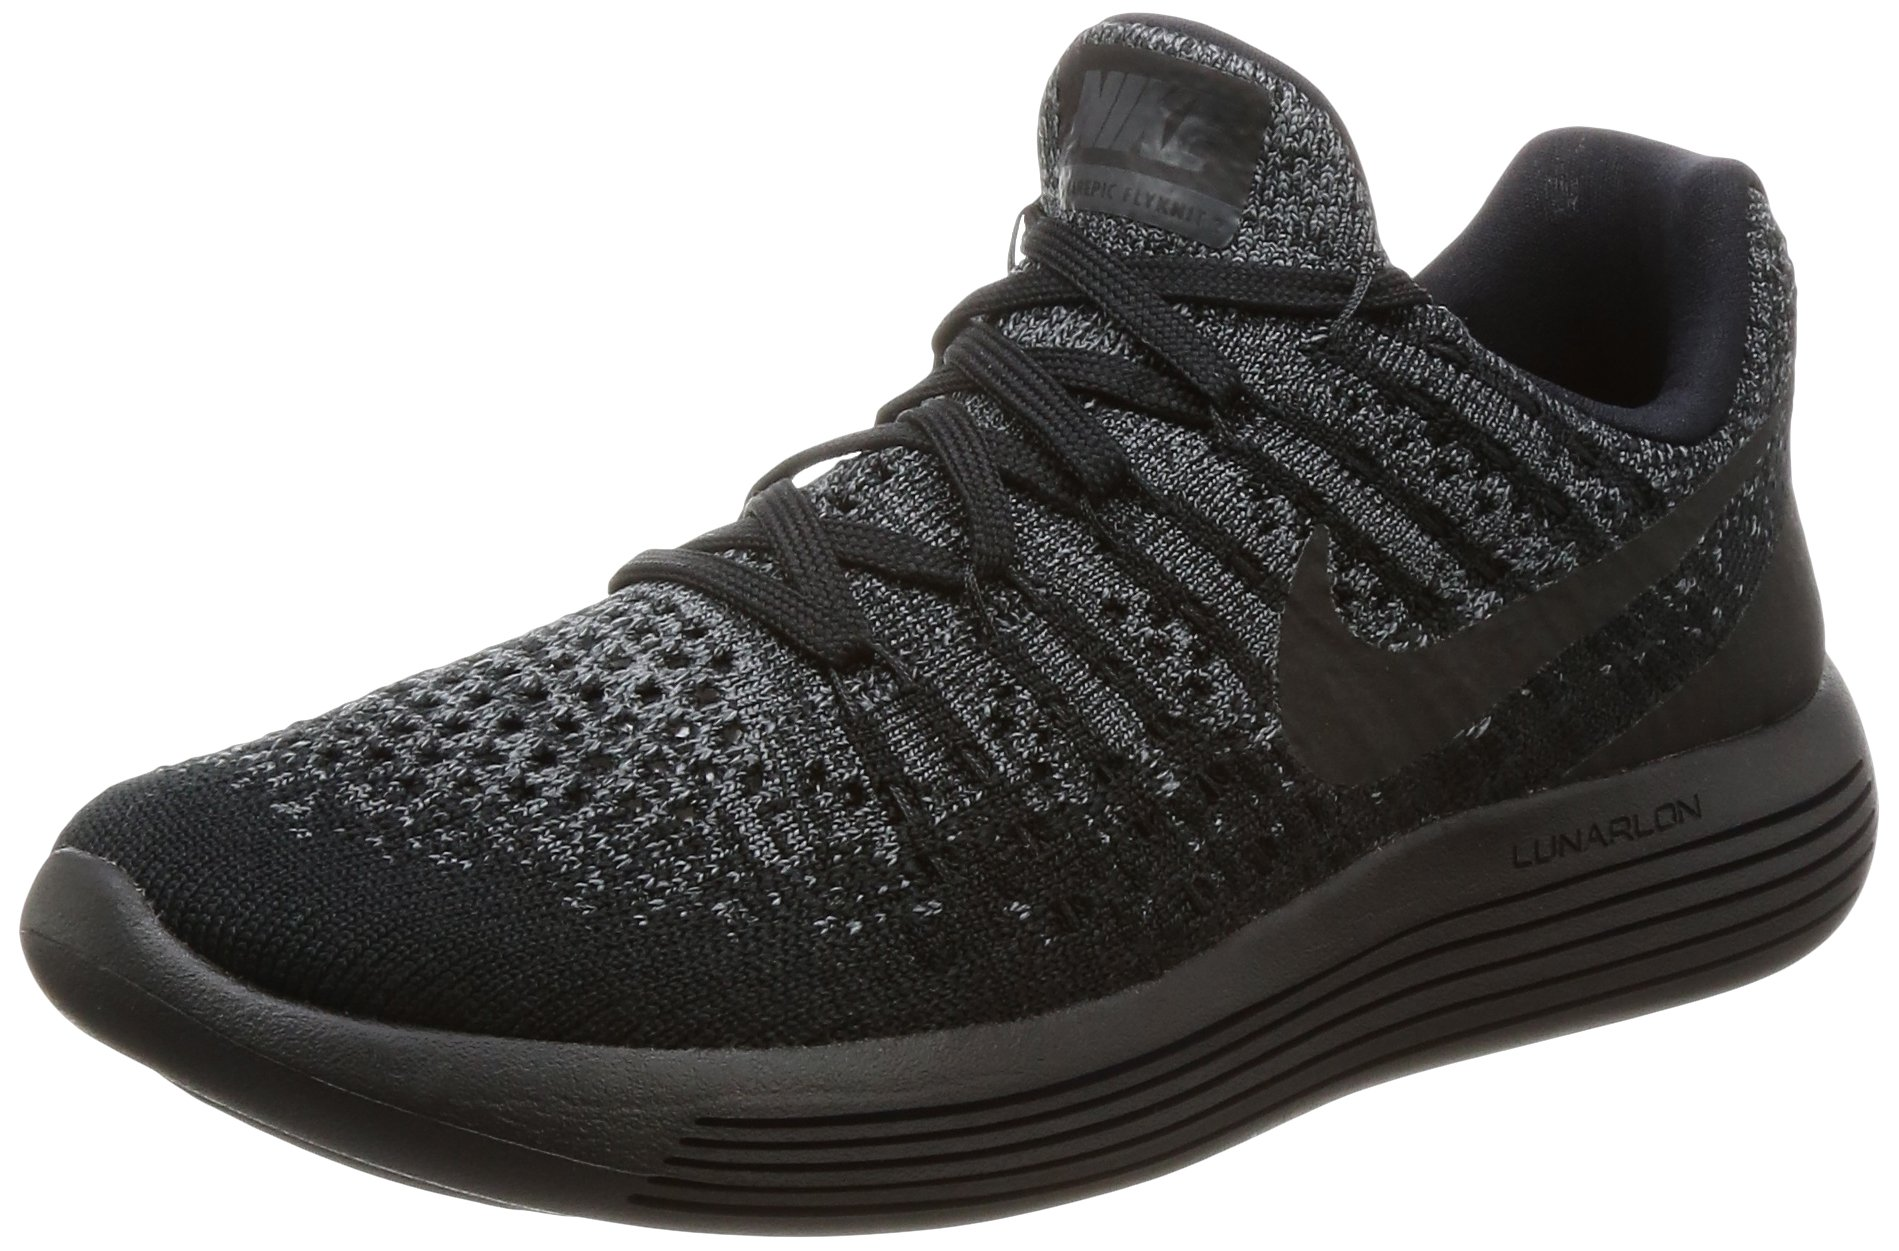 online store a23c7 ab3ed Galleon - Nike Womens LunarEpic Low Flyknit 2 Running Shoe Black Black-Dark  Grey-Racer Blue 5.5